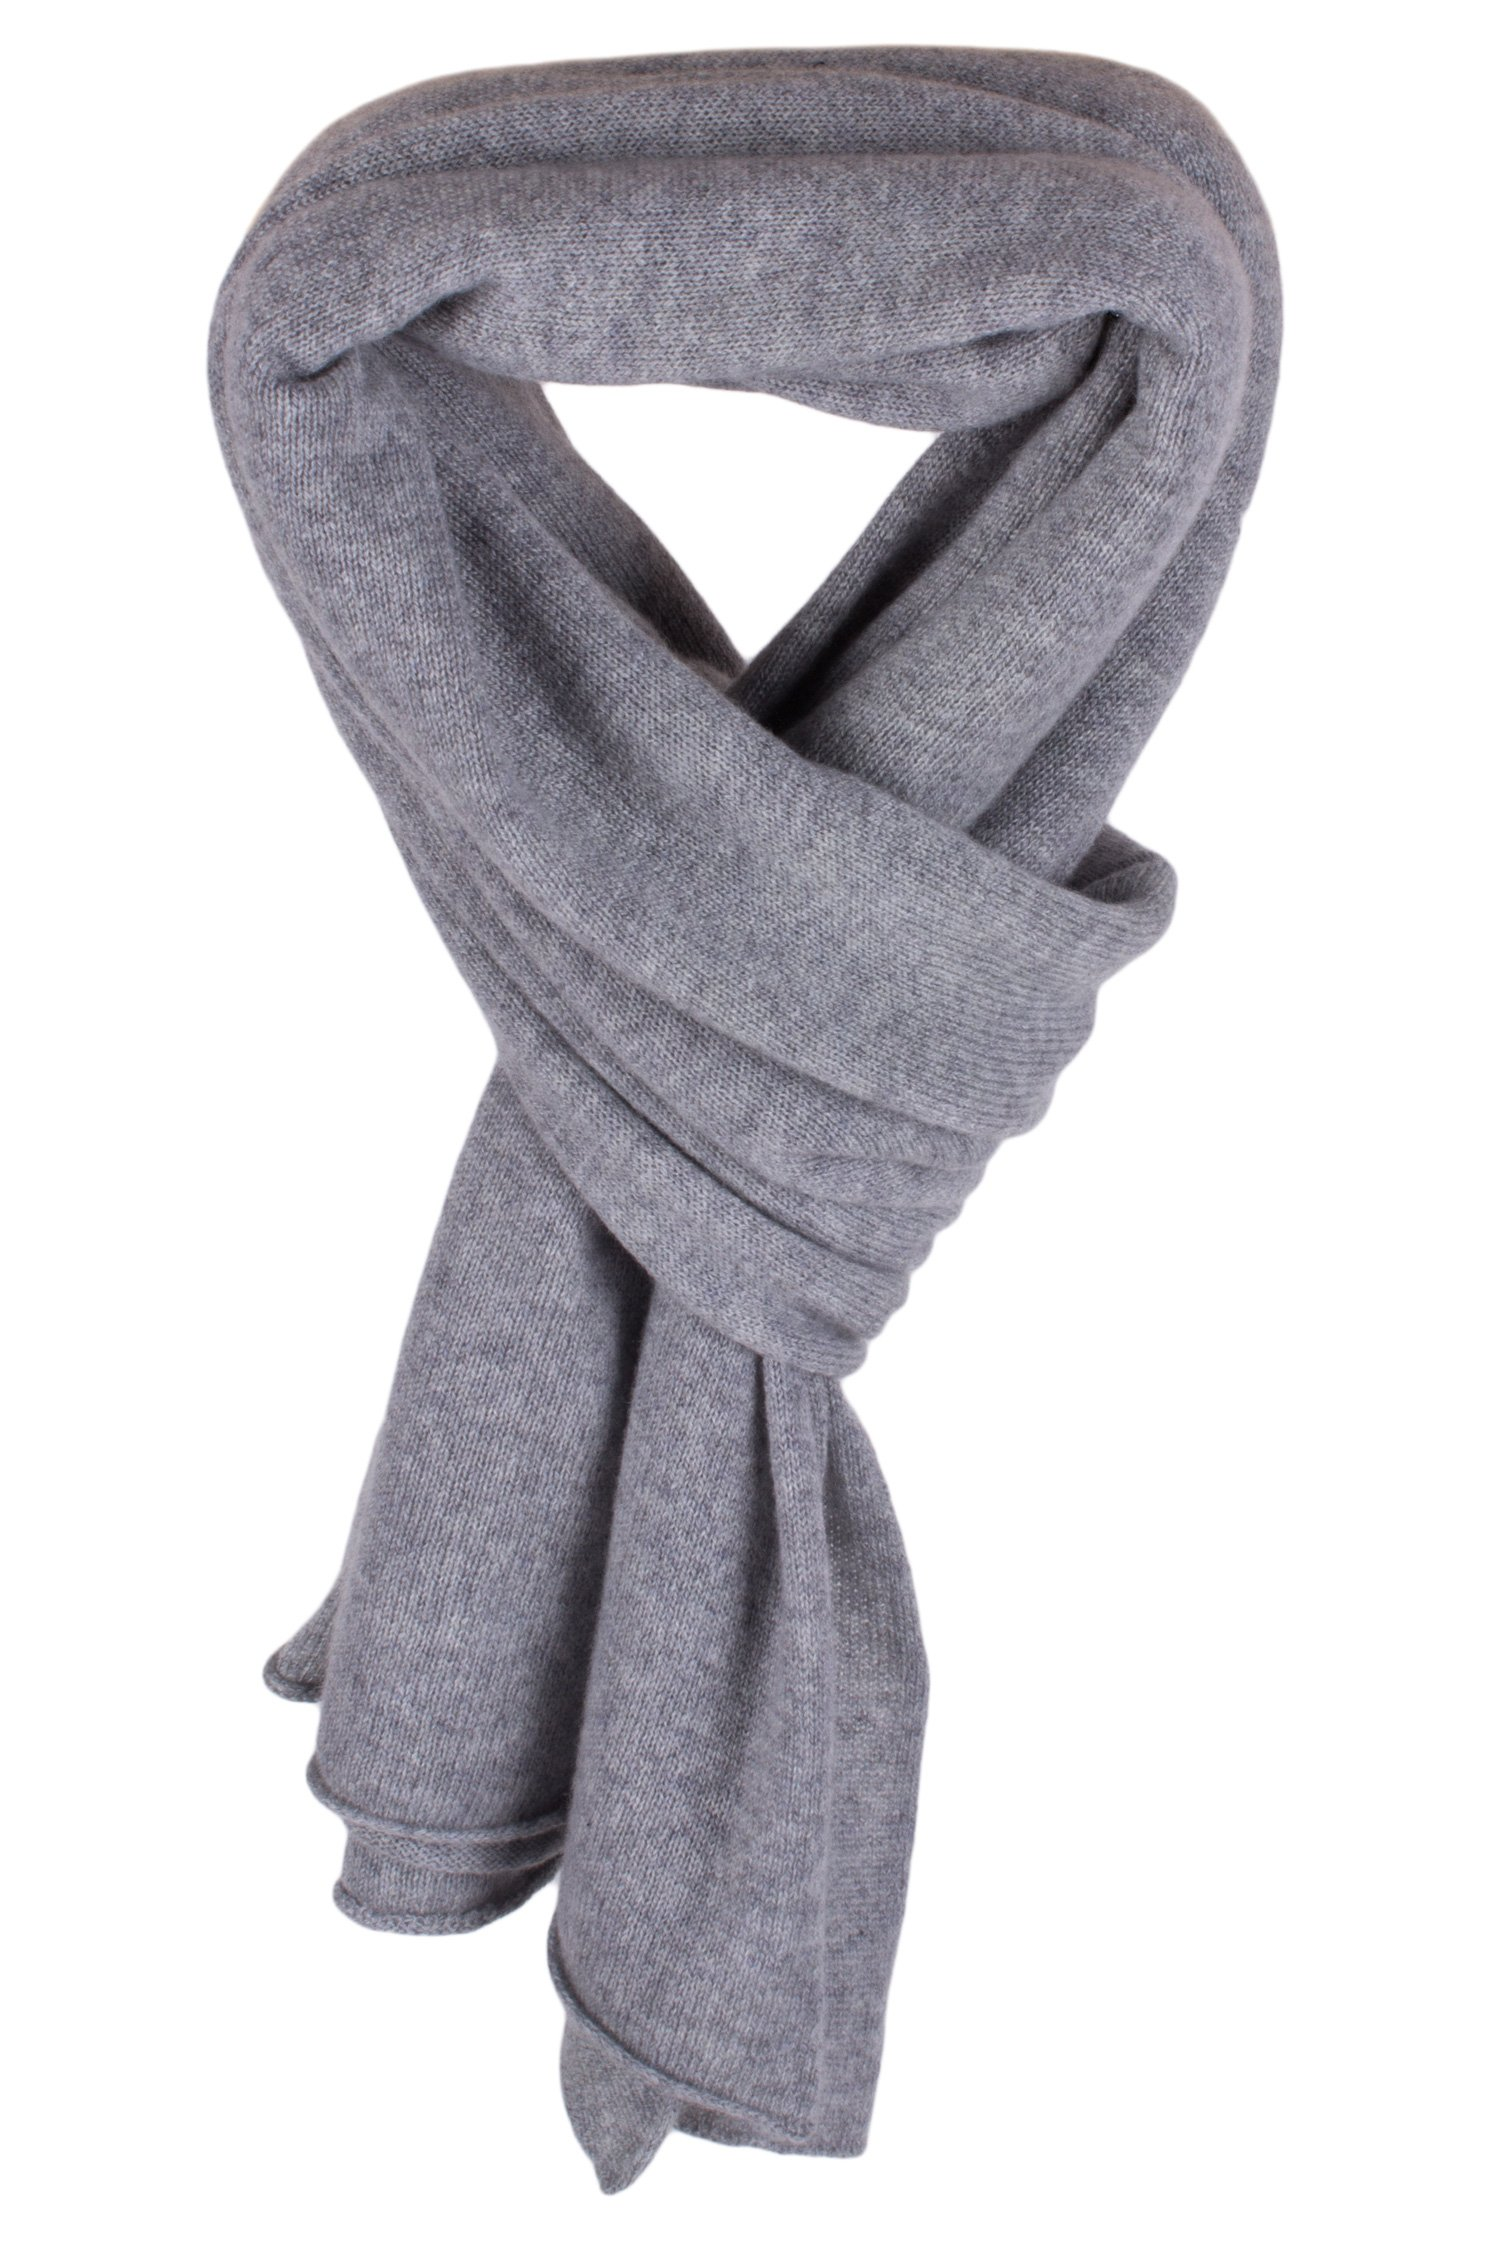 Women's 100% Cashmere Wrap Scarf - Light Gray - hand made in Scotland by Love Cashmere RRP $350